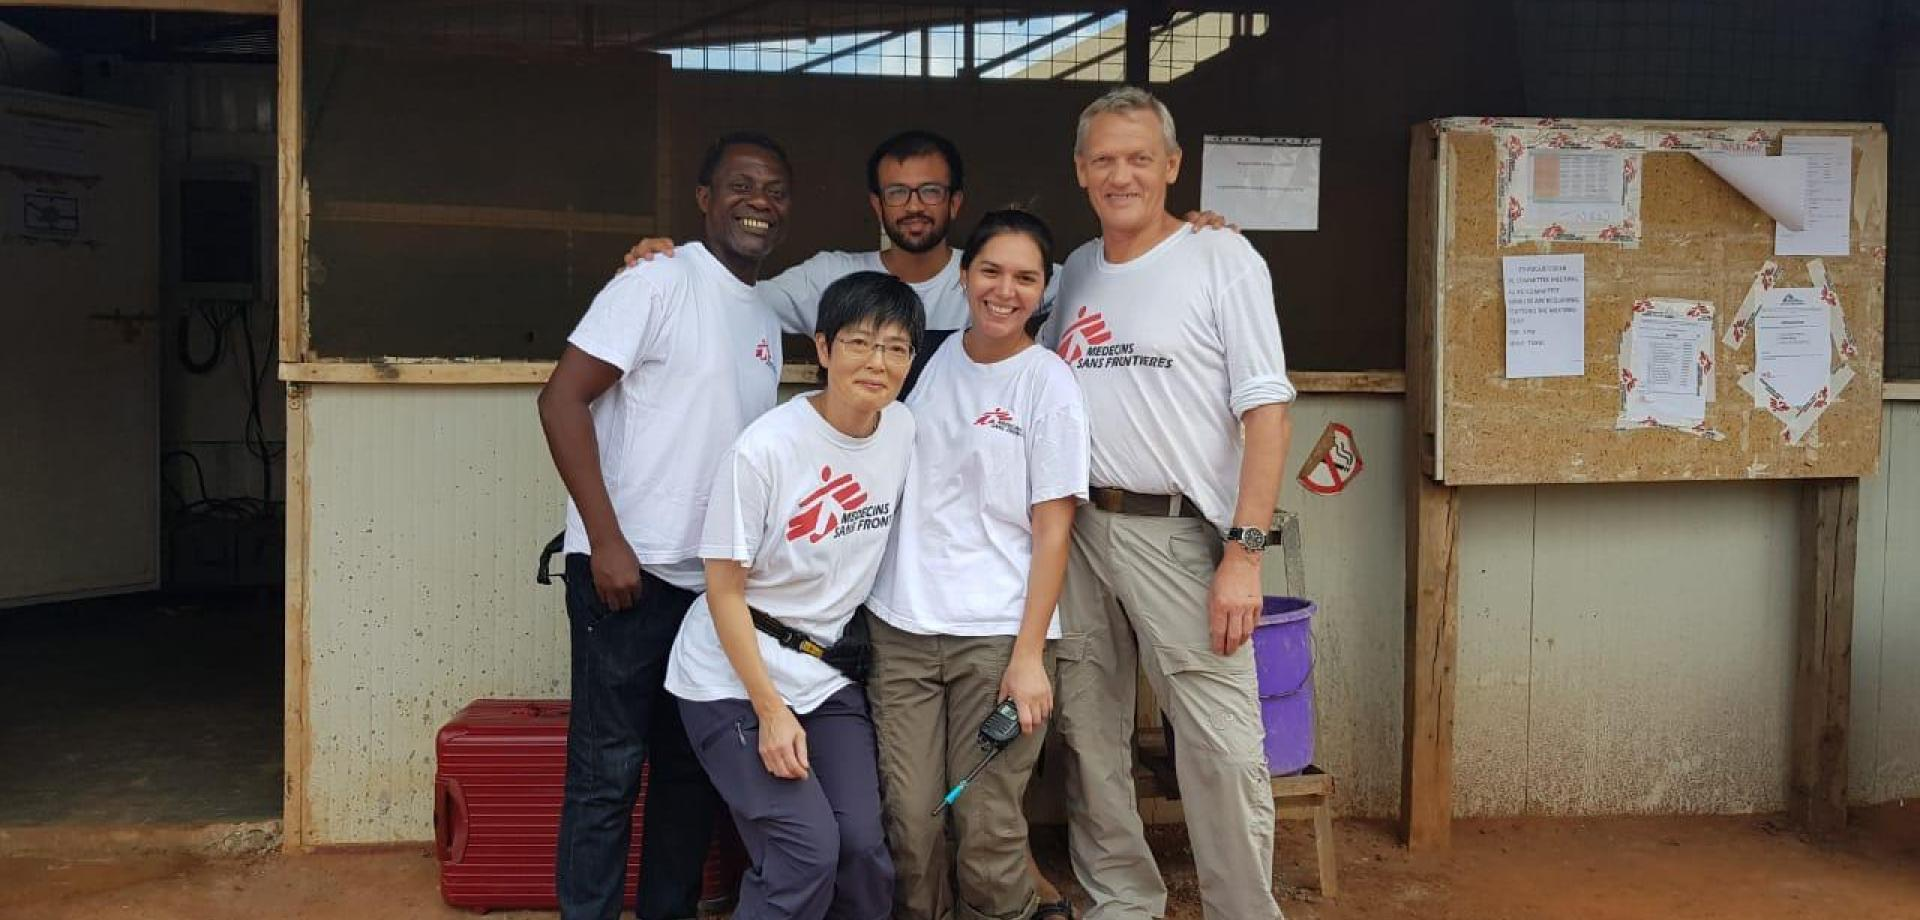 Zafar Abdi and colleagues at an MSF project in South Sudan